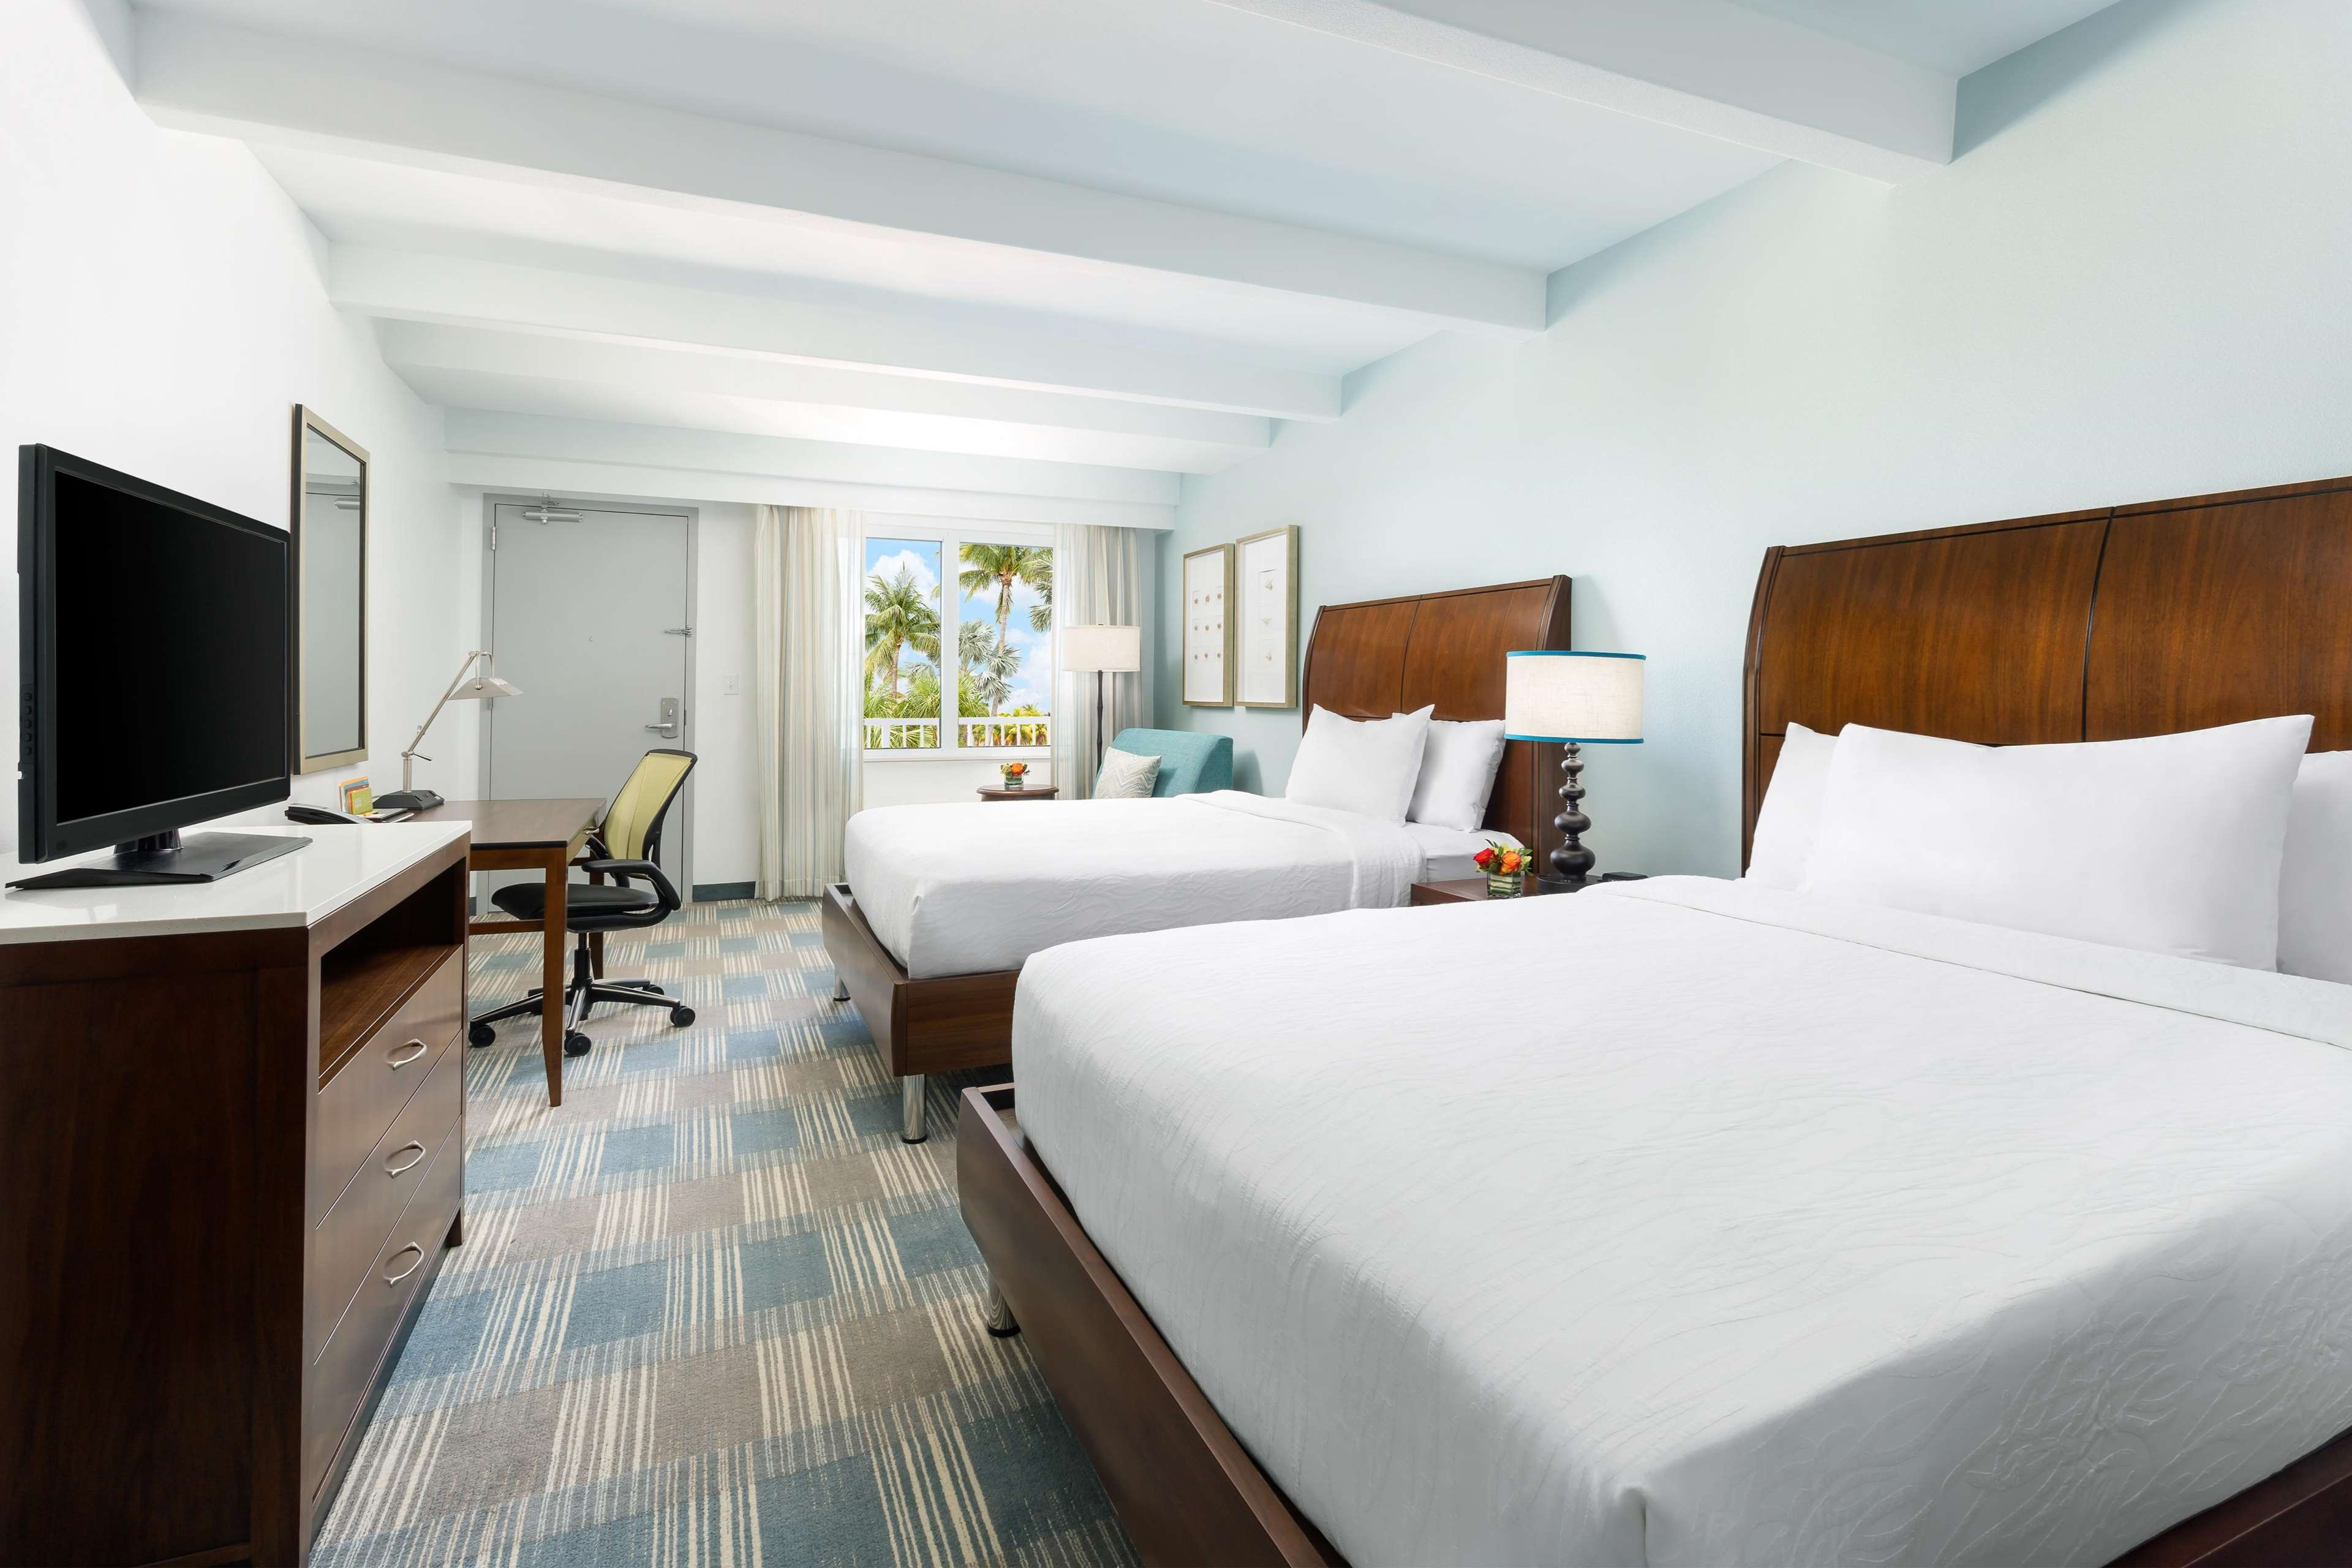 open all day today hotel hilton garden inn key west - Hilton Garden Inn Key West